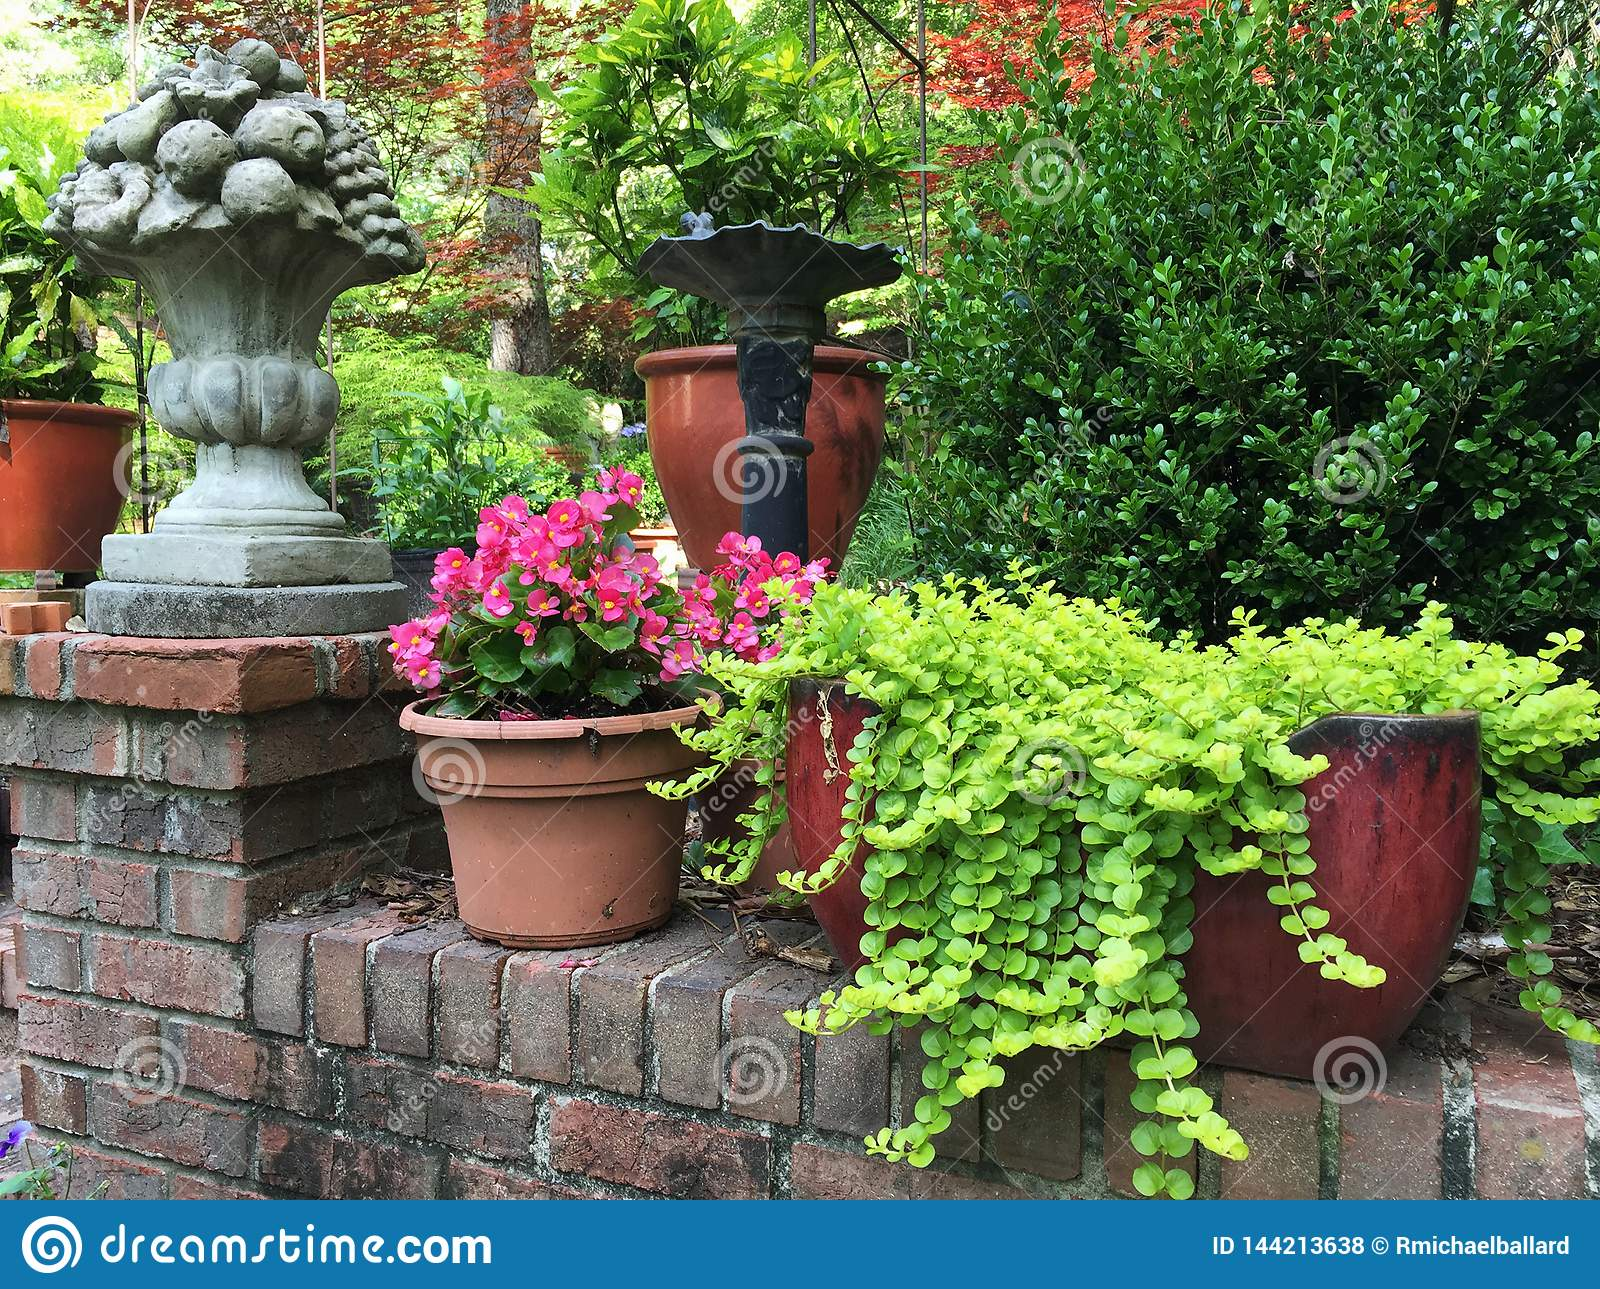 Backyard Patio Container Garden With Plants And Flowers Stock